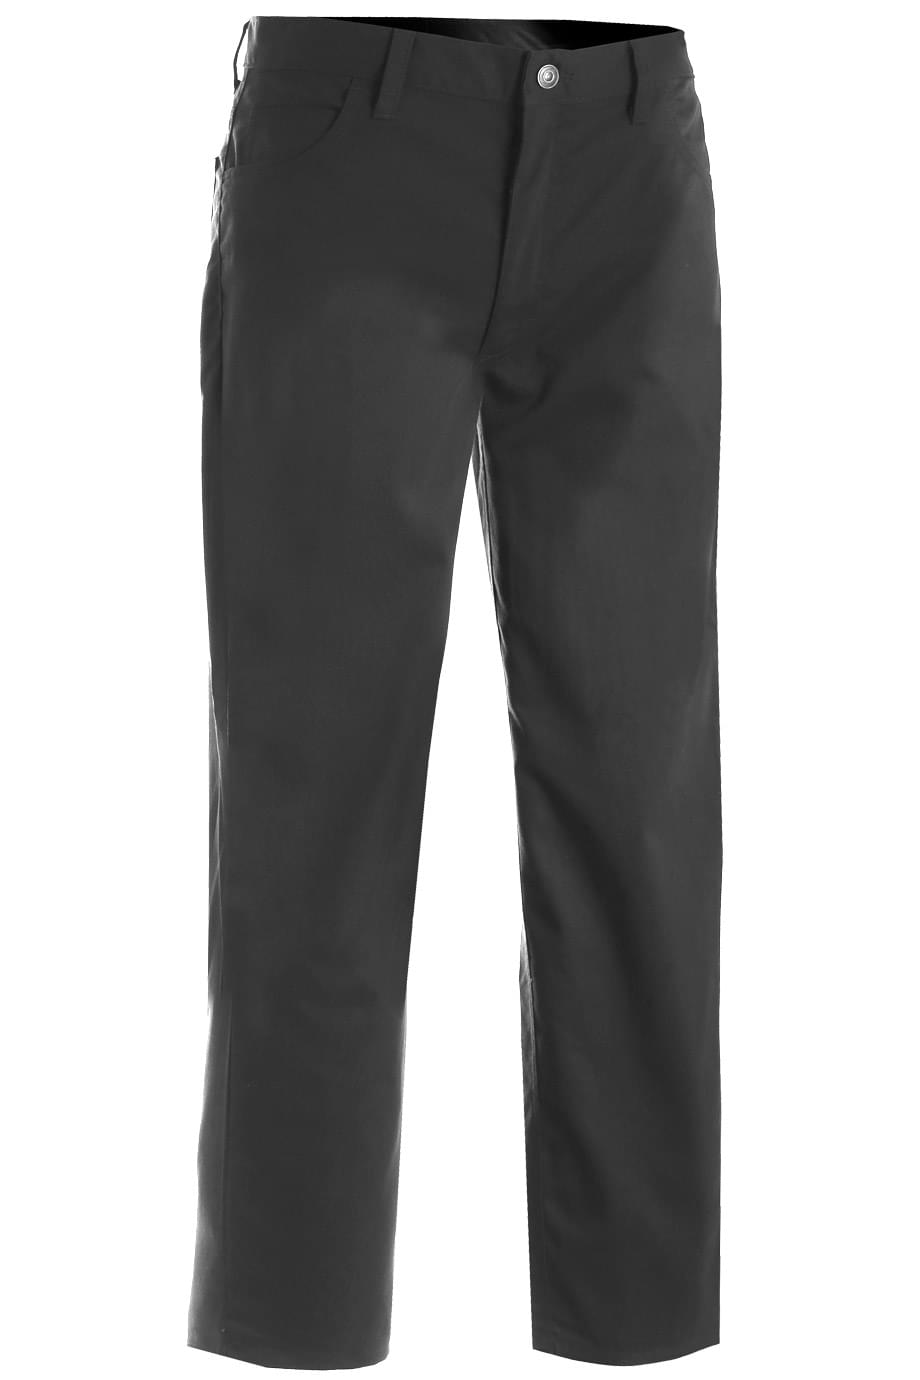 RUGGED COMFORT PANT